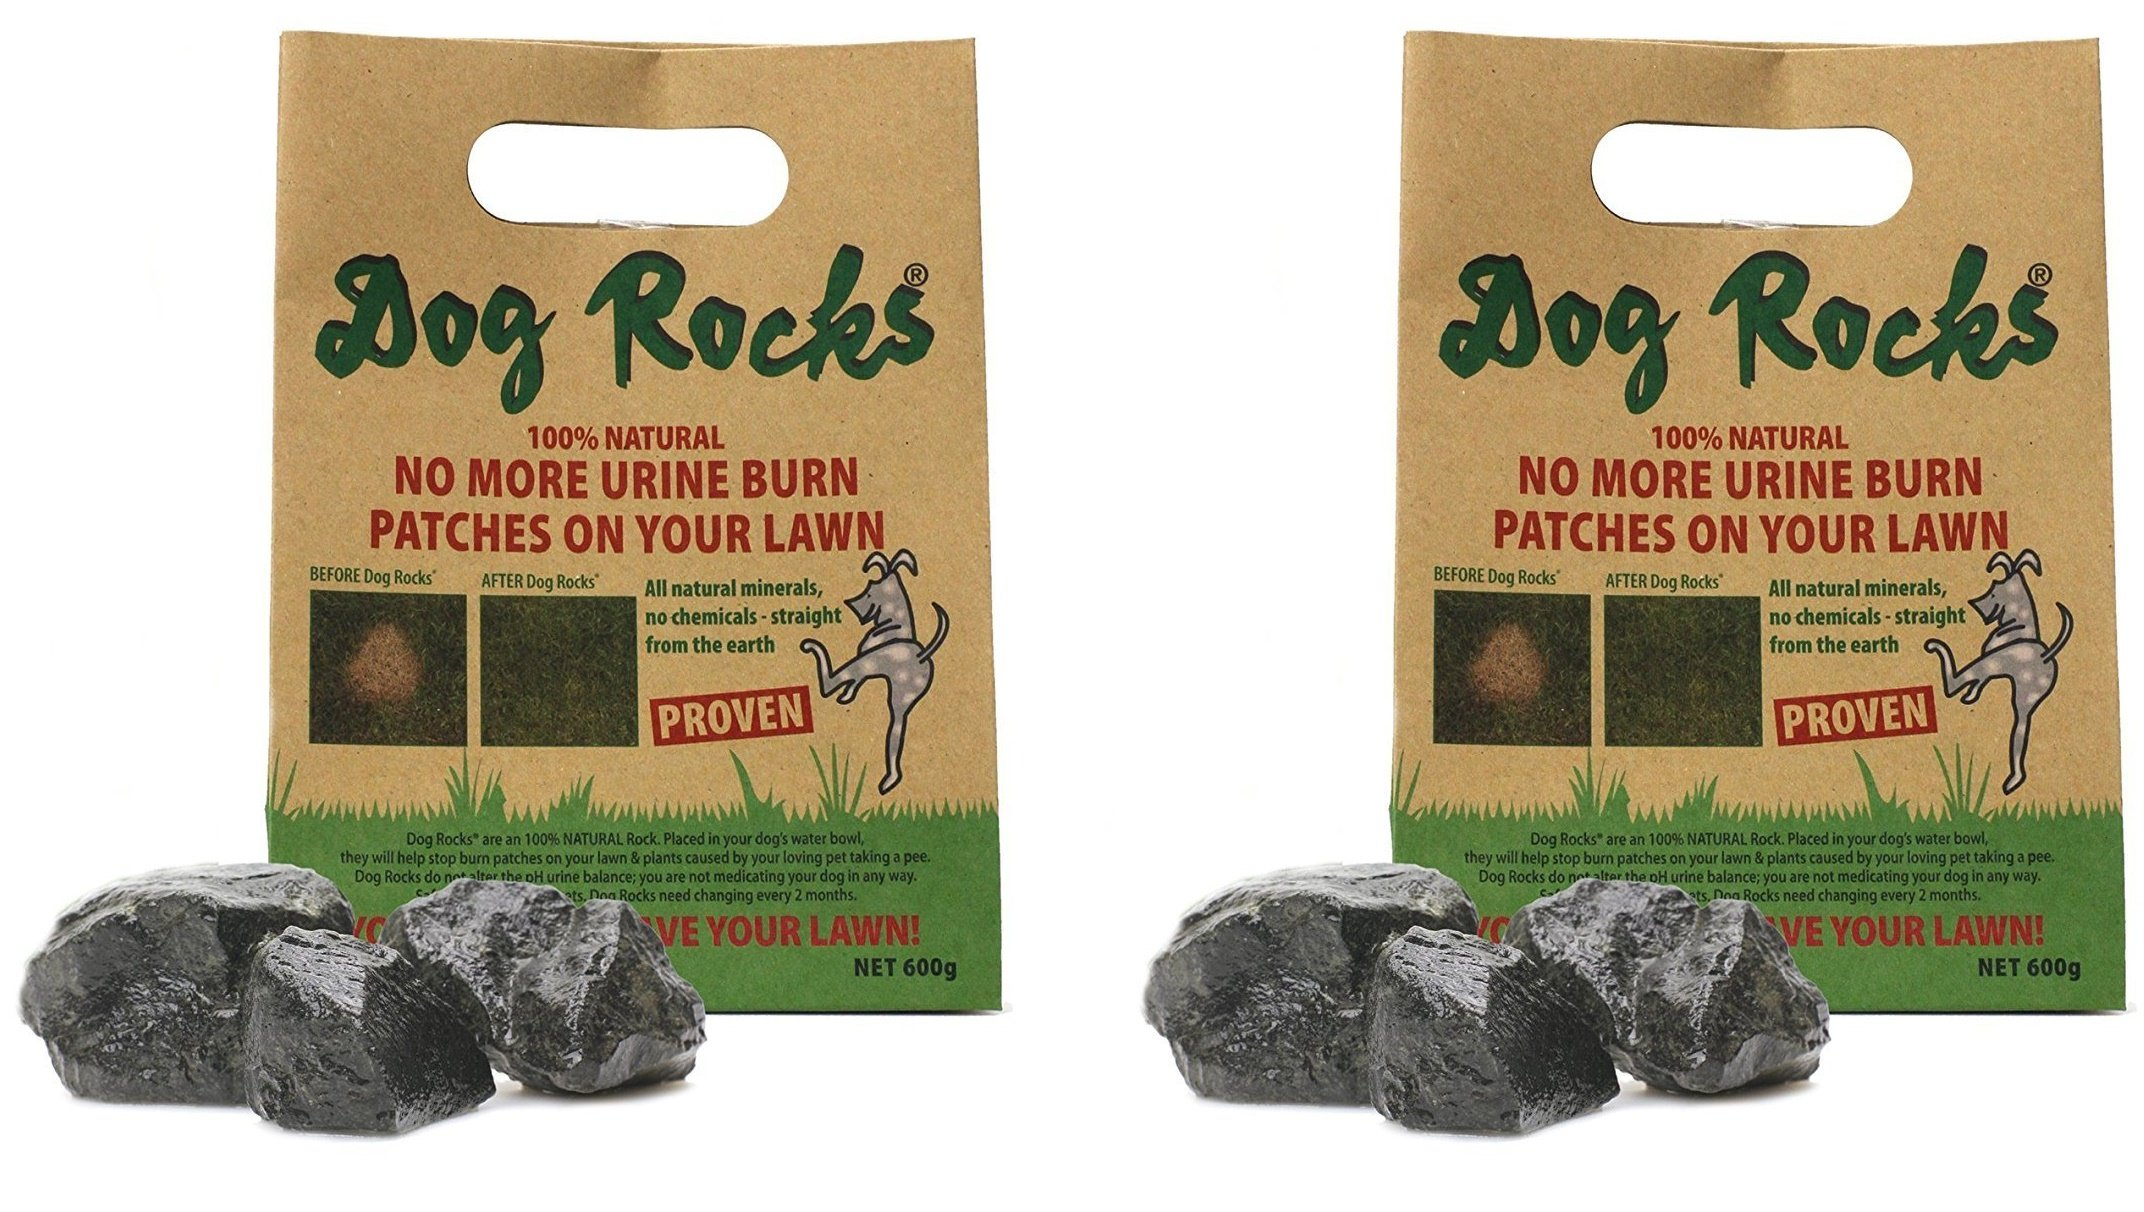 Dog Rocks - 100% Natural Grass Burn Prevention - Prevents Lawn Urine Stains - Two Large Bulk Bags - 12 Month Supply